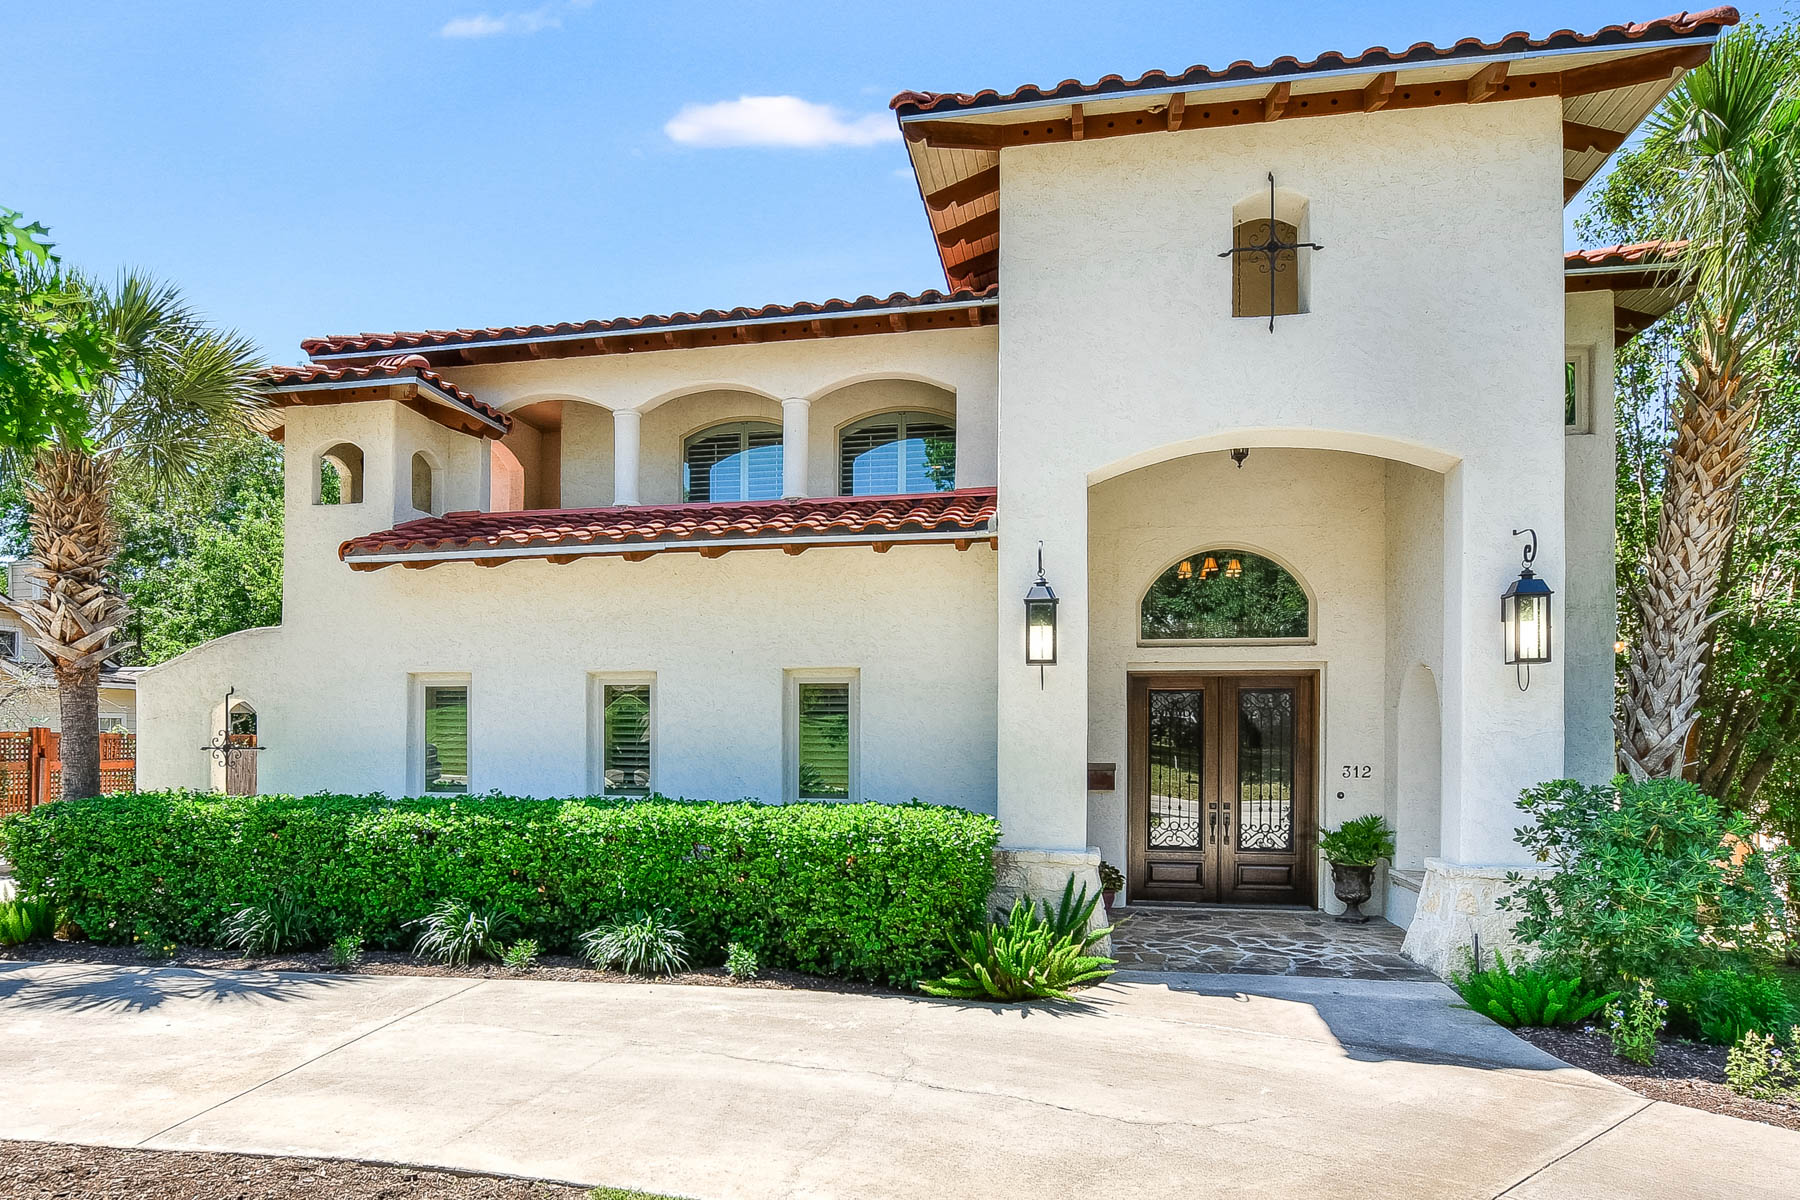 Single Family Home for Sale at Mediterranean Custom Home in Terrell Hills 312 Lilac Ln San Antonio, Texas 78209 United States